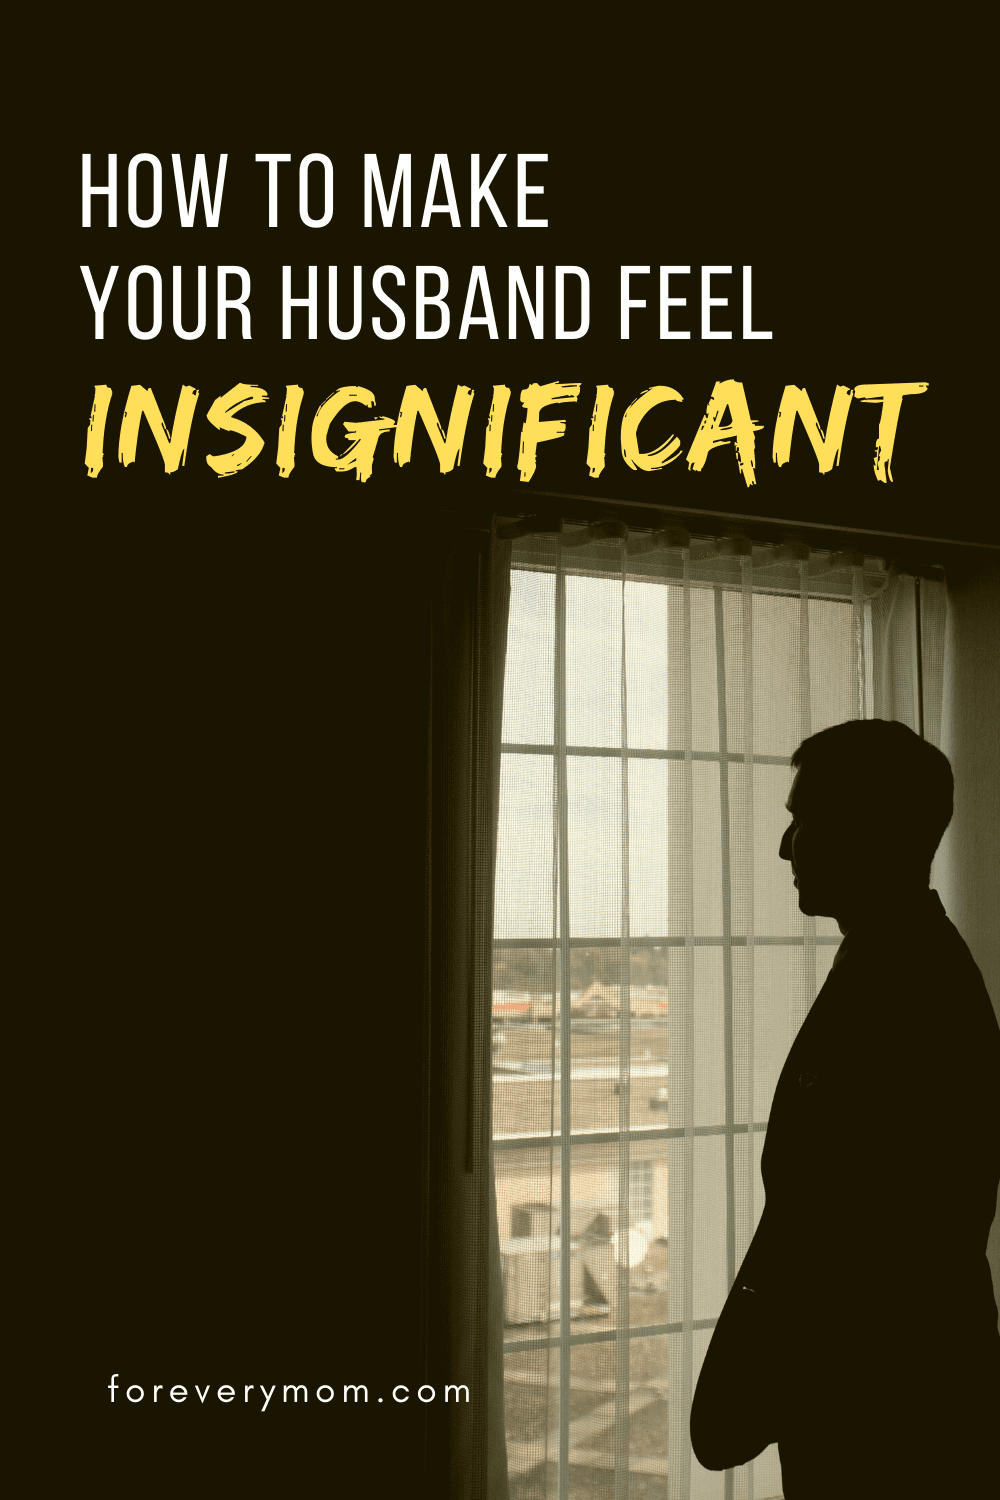 How to Make Your Husband Feel Insignificant pin